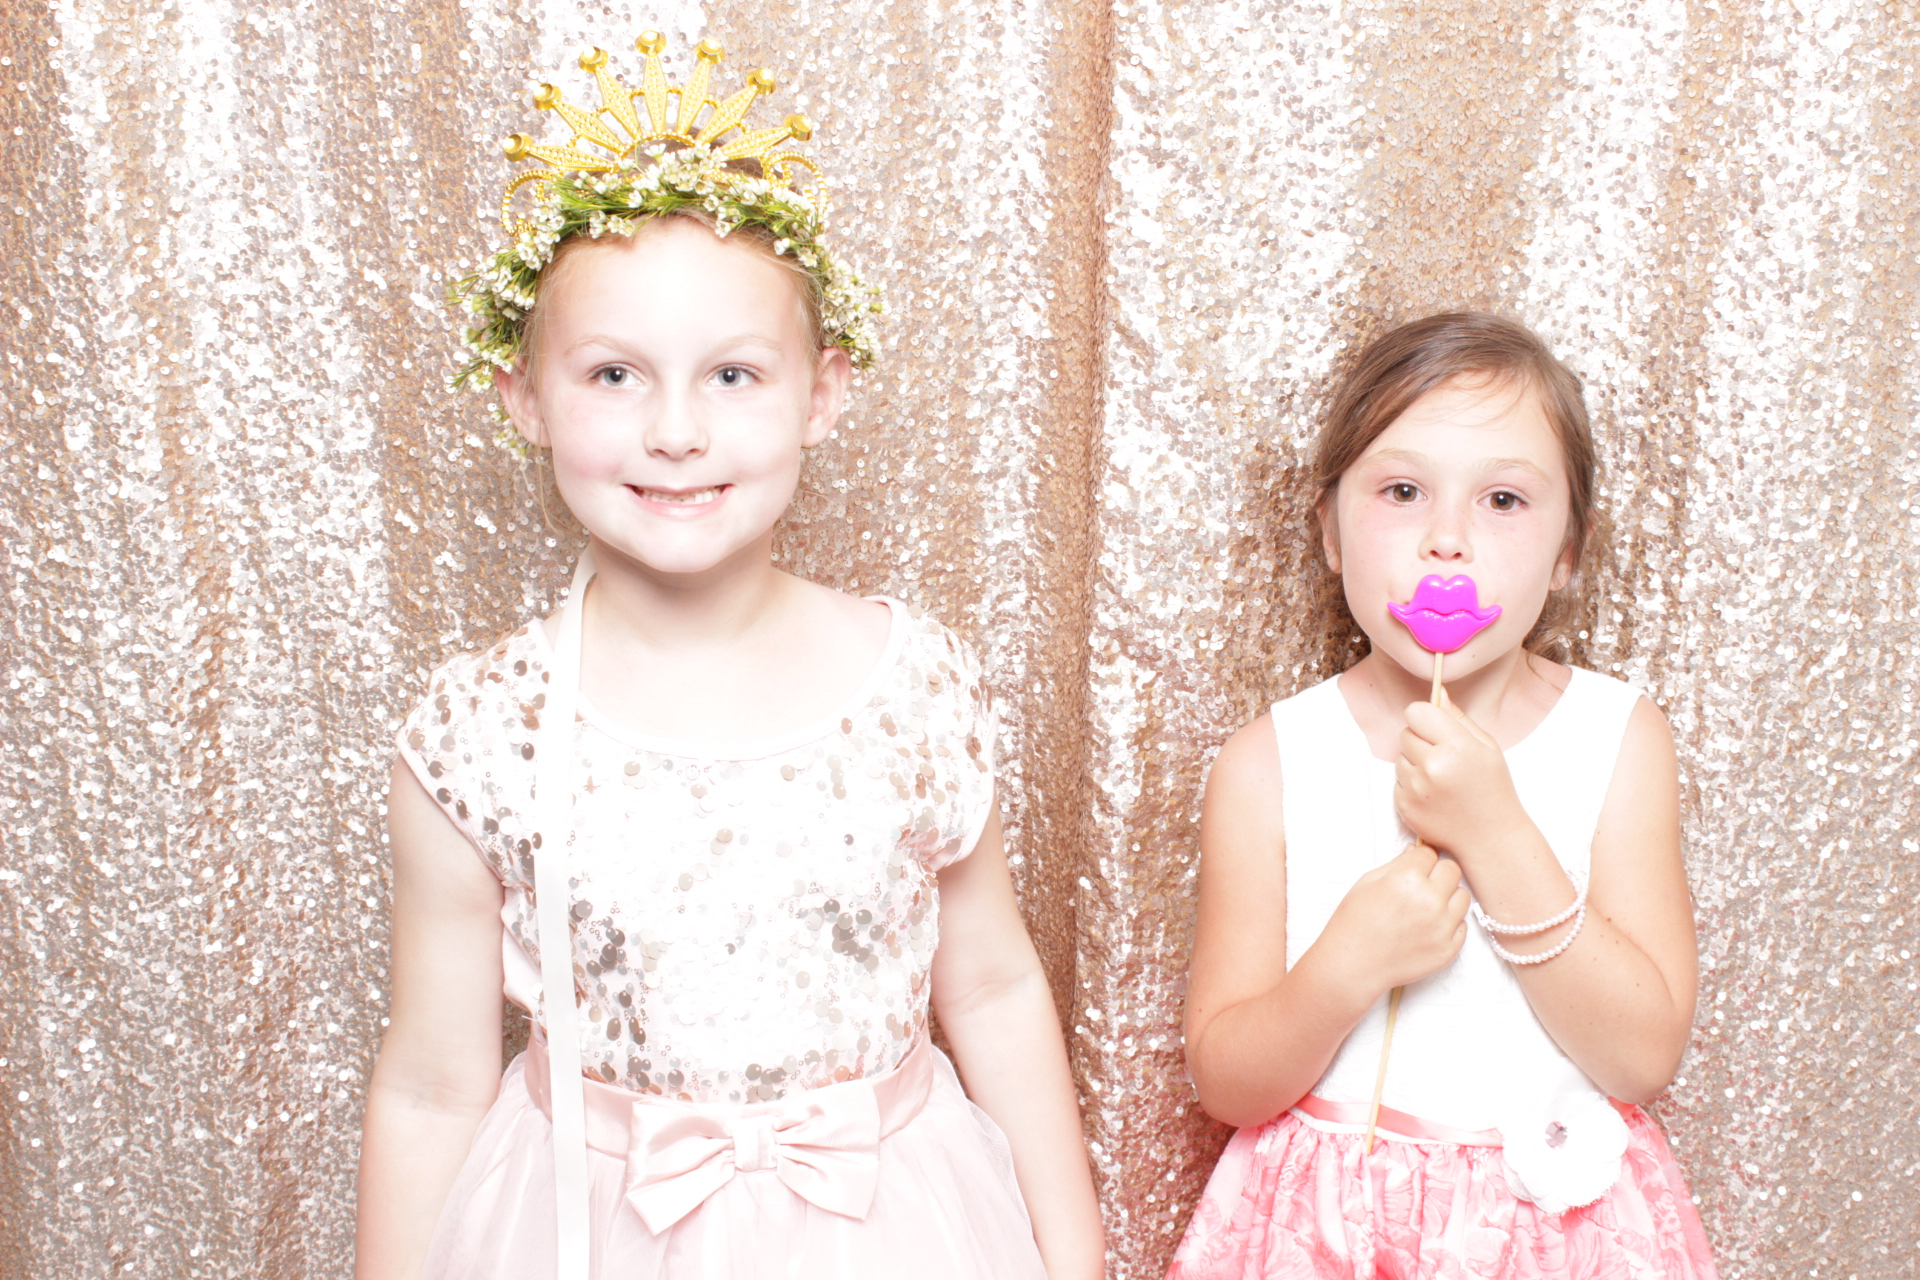 Ft. Lauderdale Wedding Photo Booth